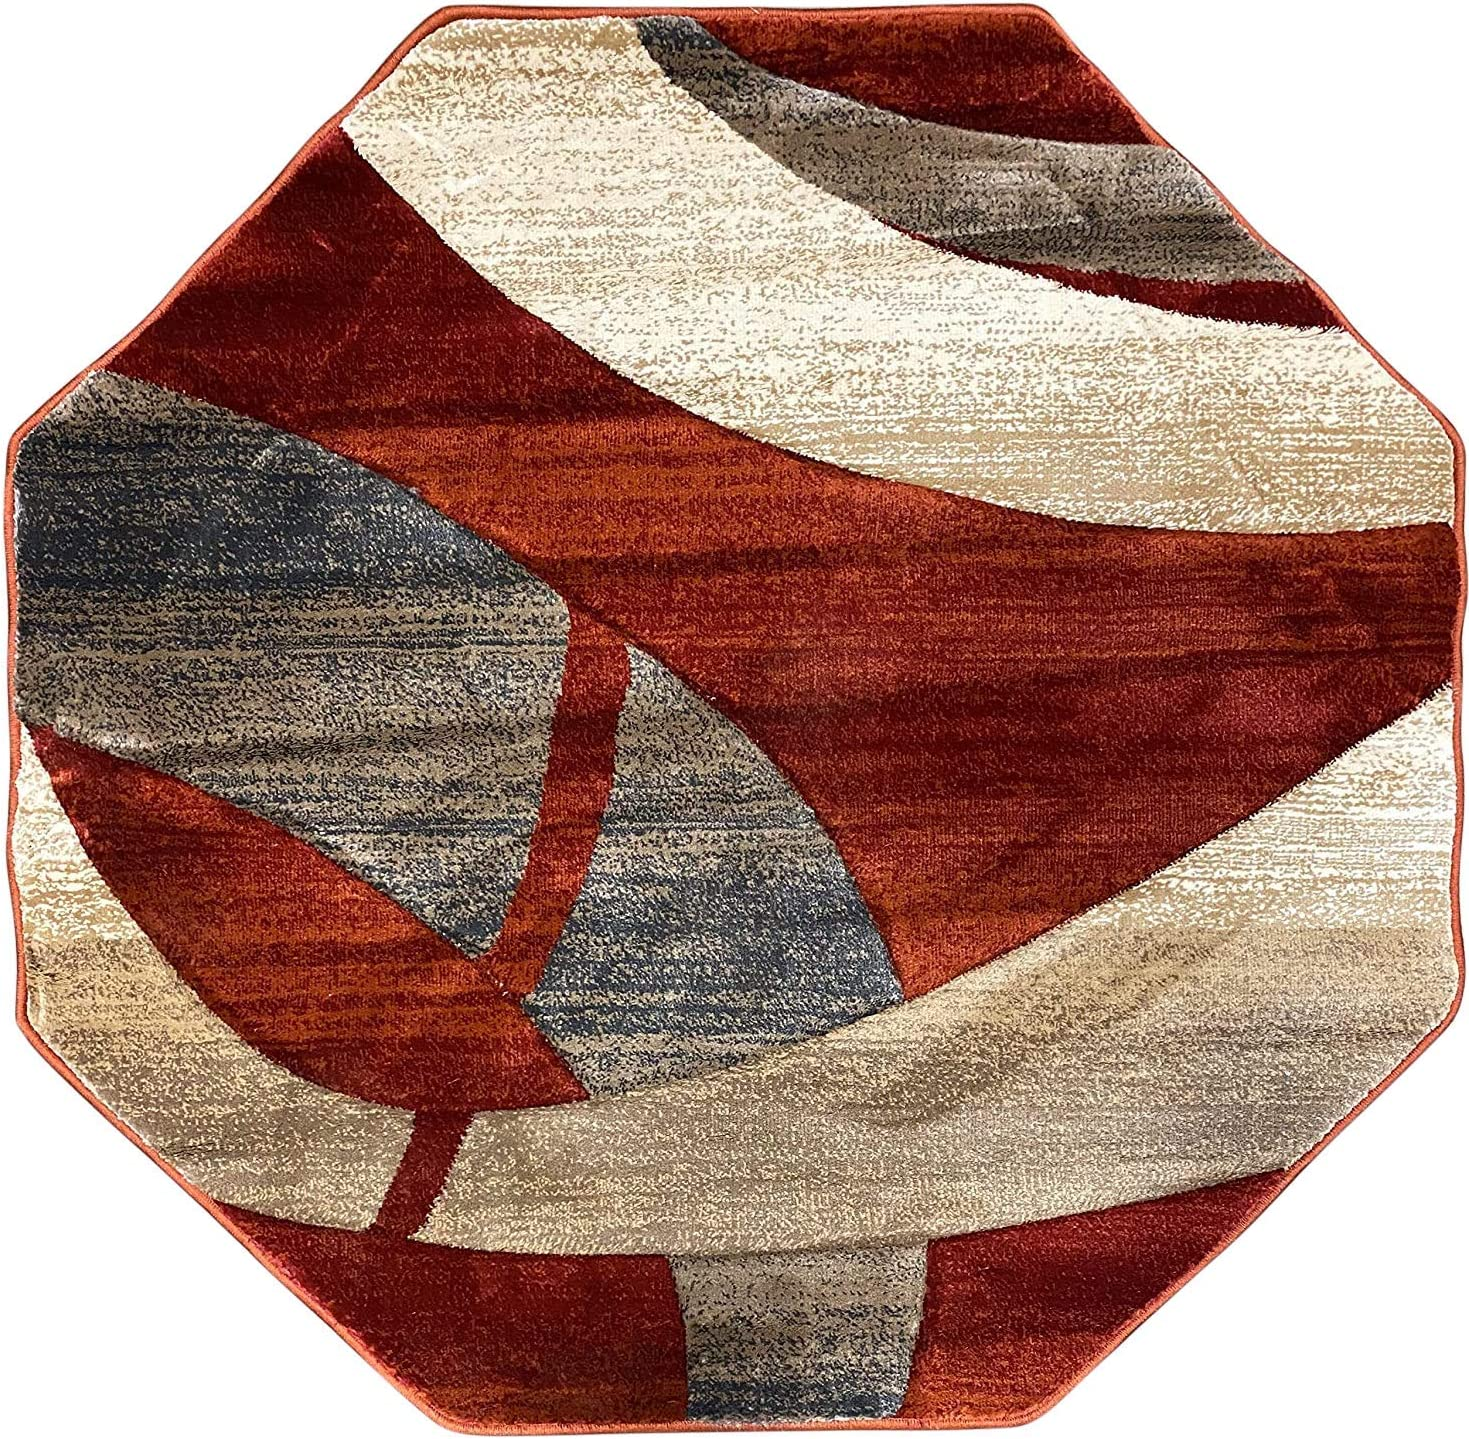 Modern Octagon Contemporary Area Rug quality assurance Beige Red Rust Terra-Cotta Max 65% OFF